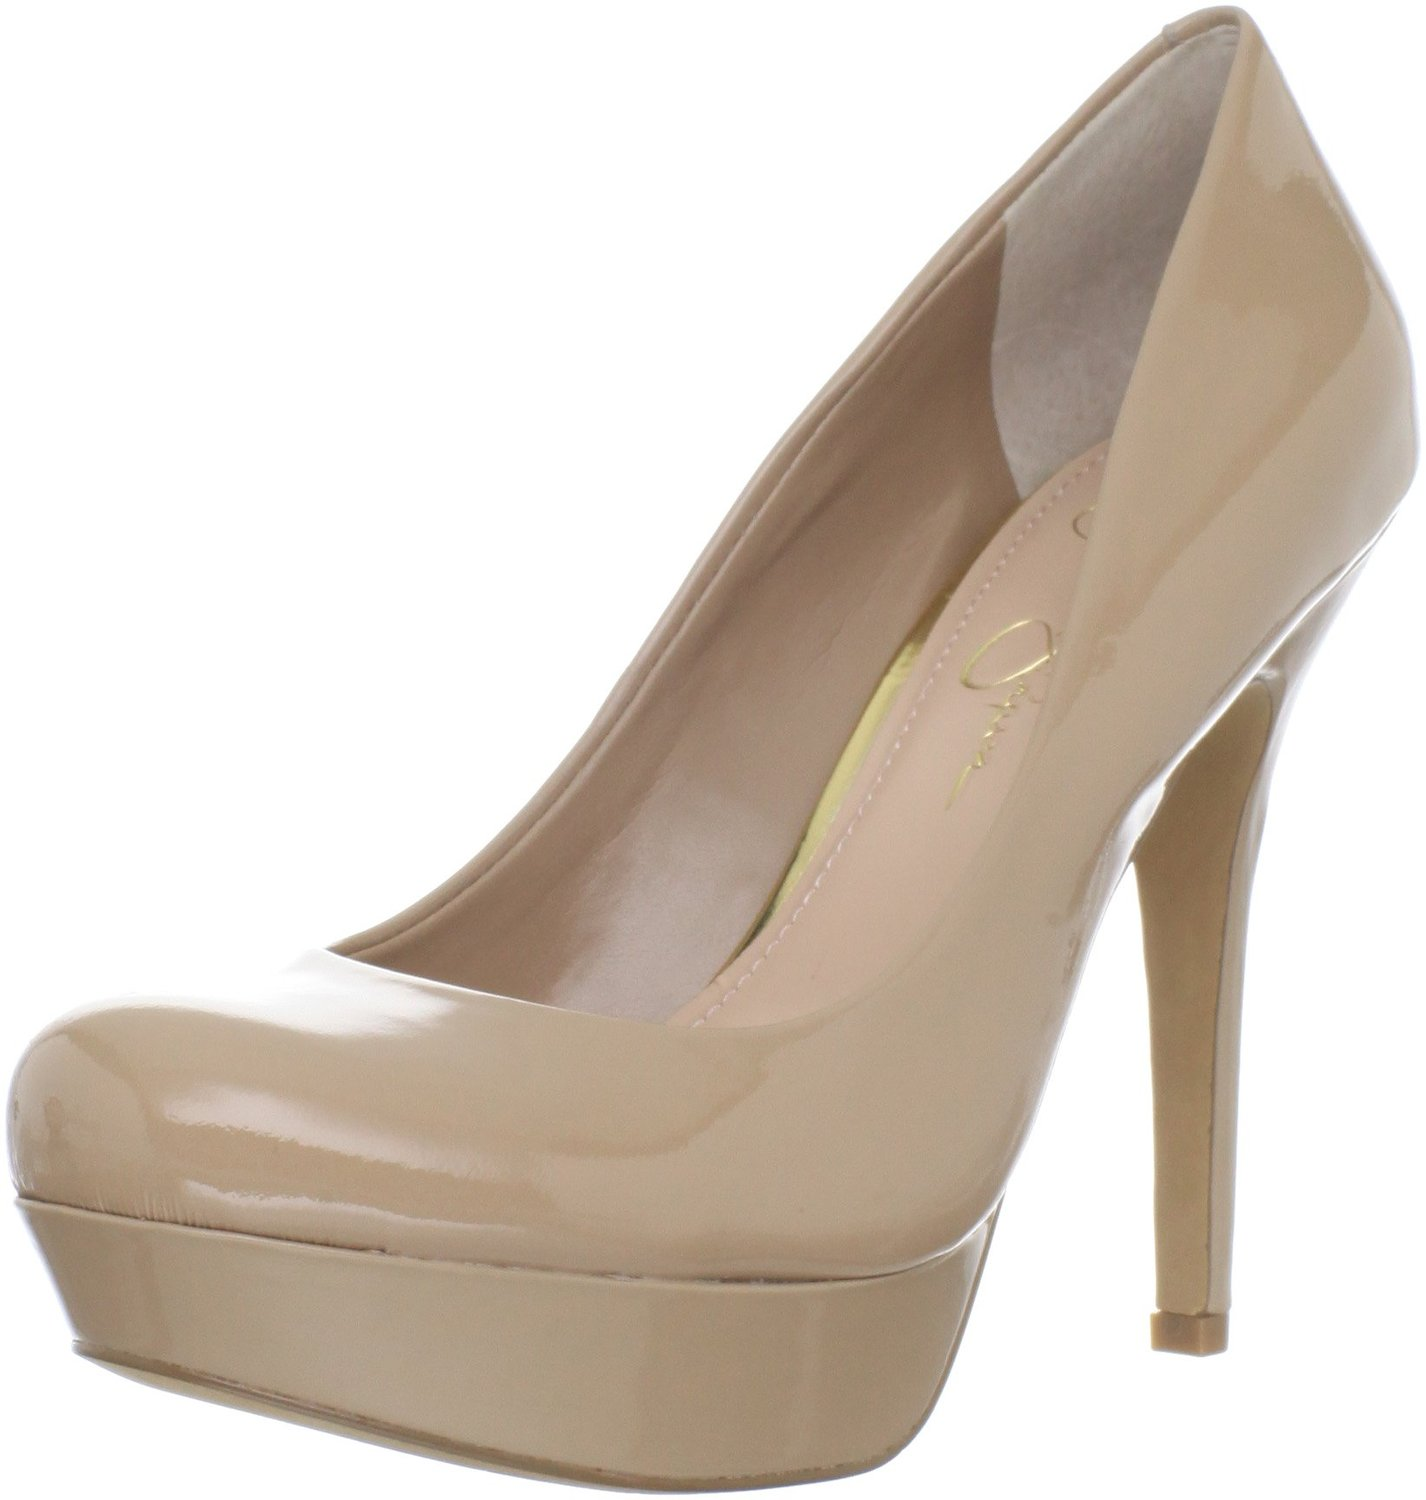 Amazon.com: Jessica Simpson Women's Given Platform Pump: Jessica Simpson: Shoes